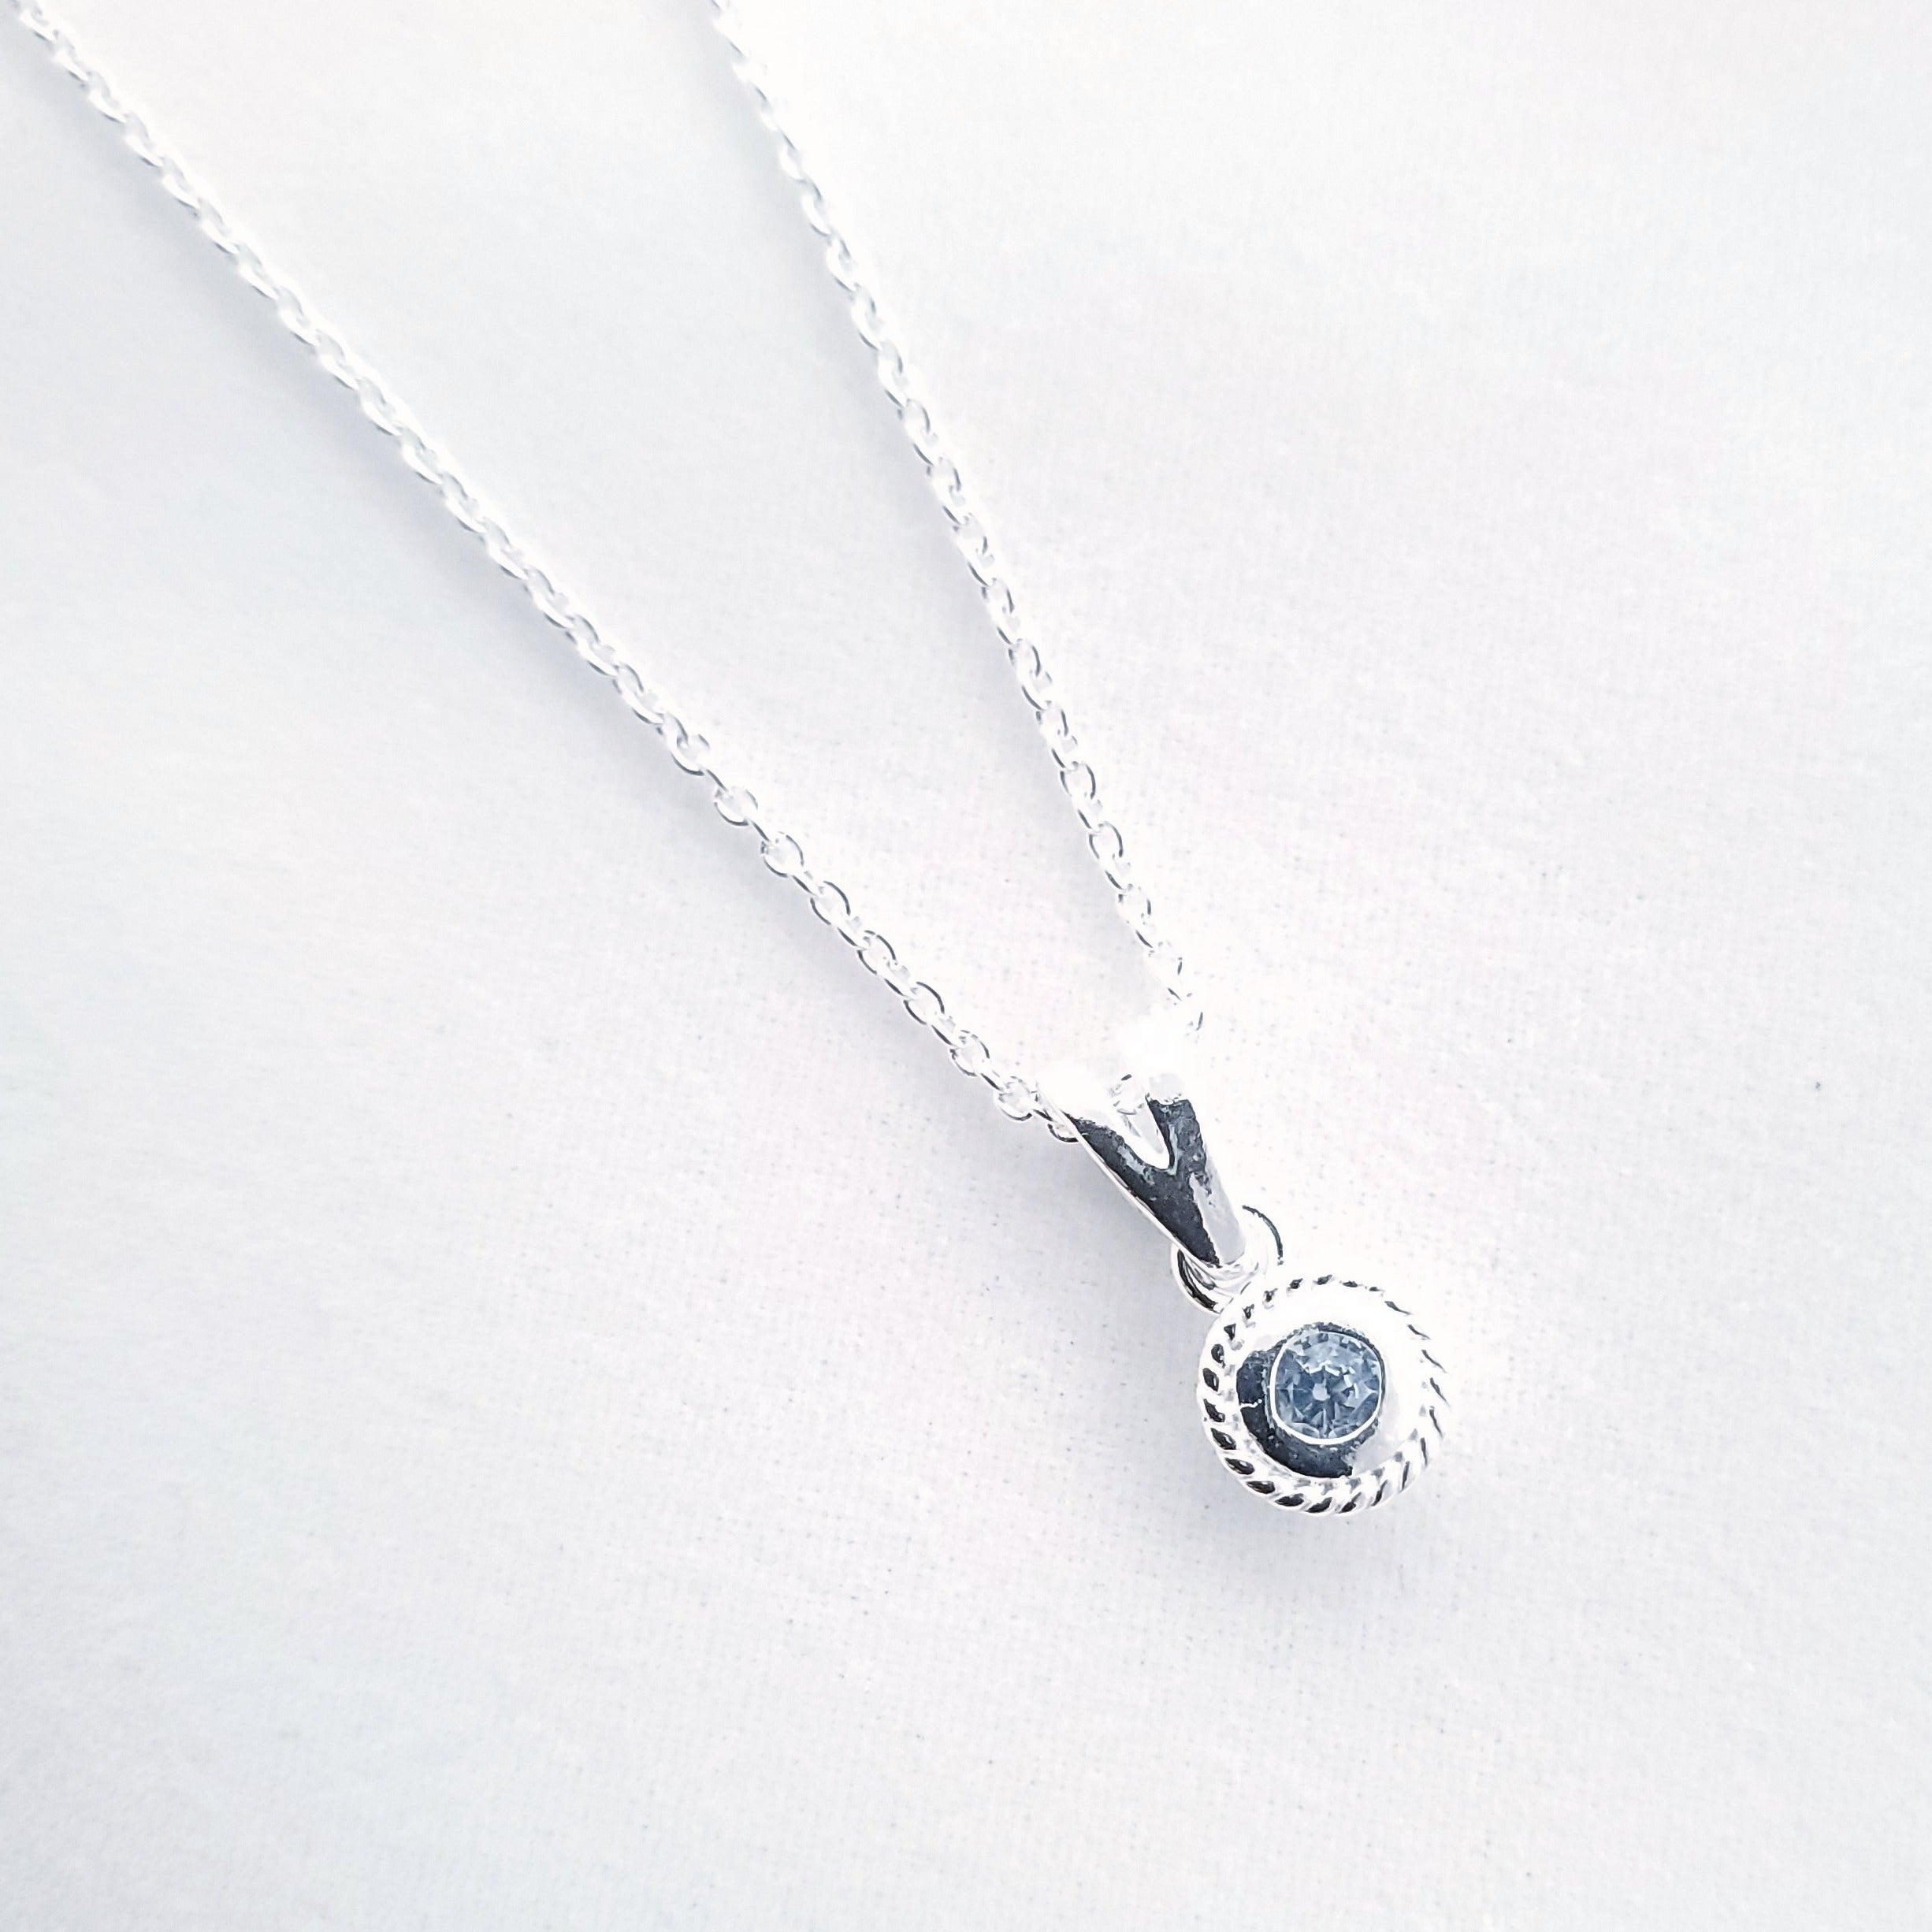 Light blue faceted round stone in silver necklace